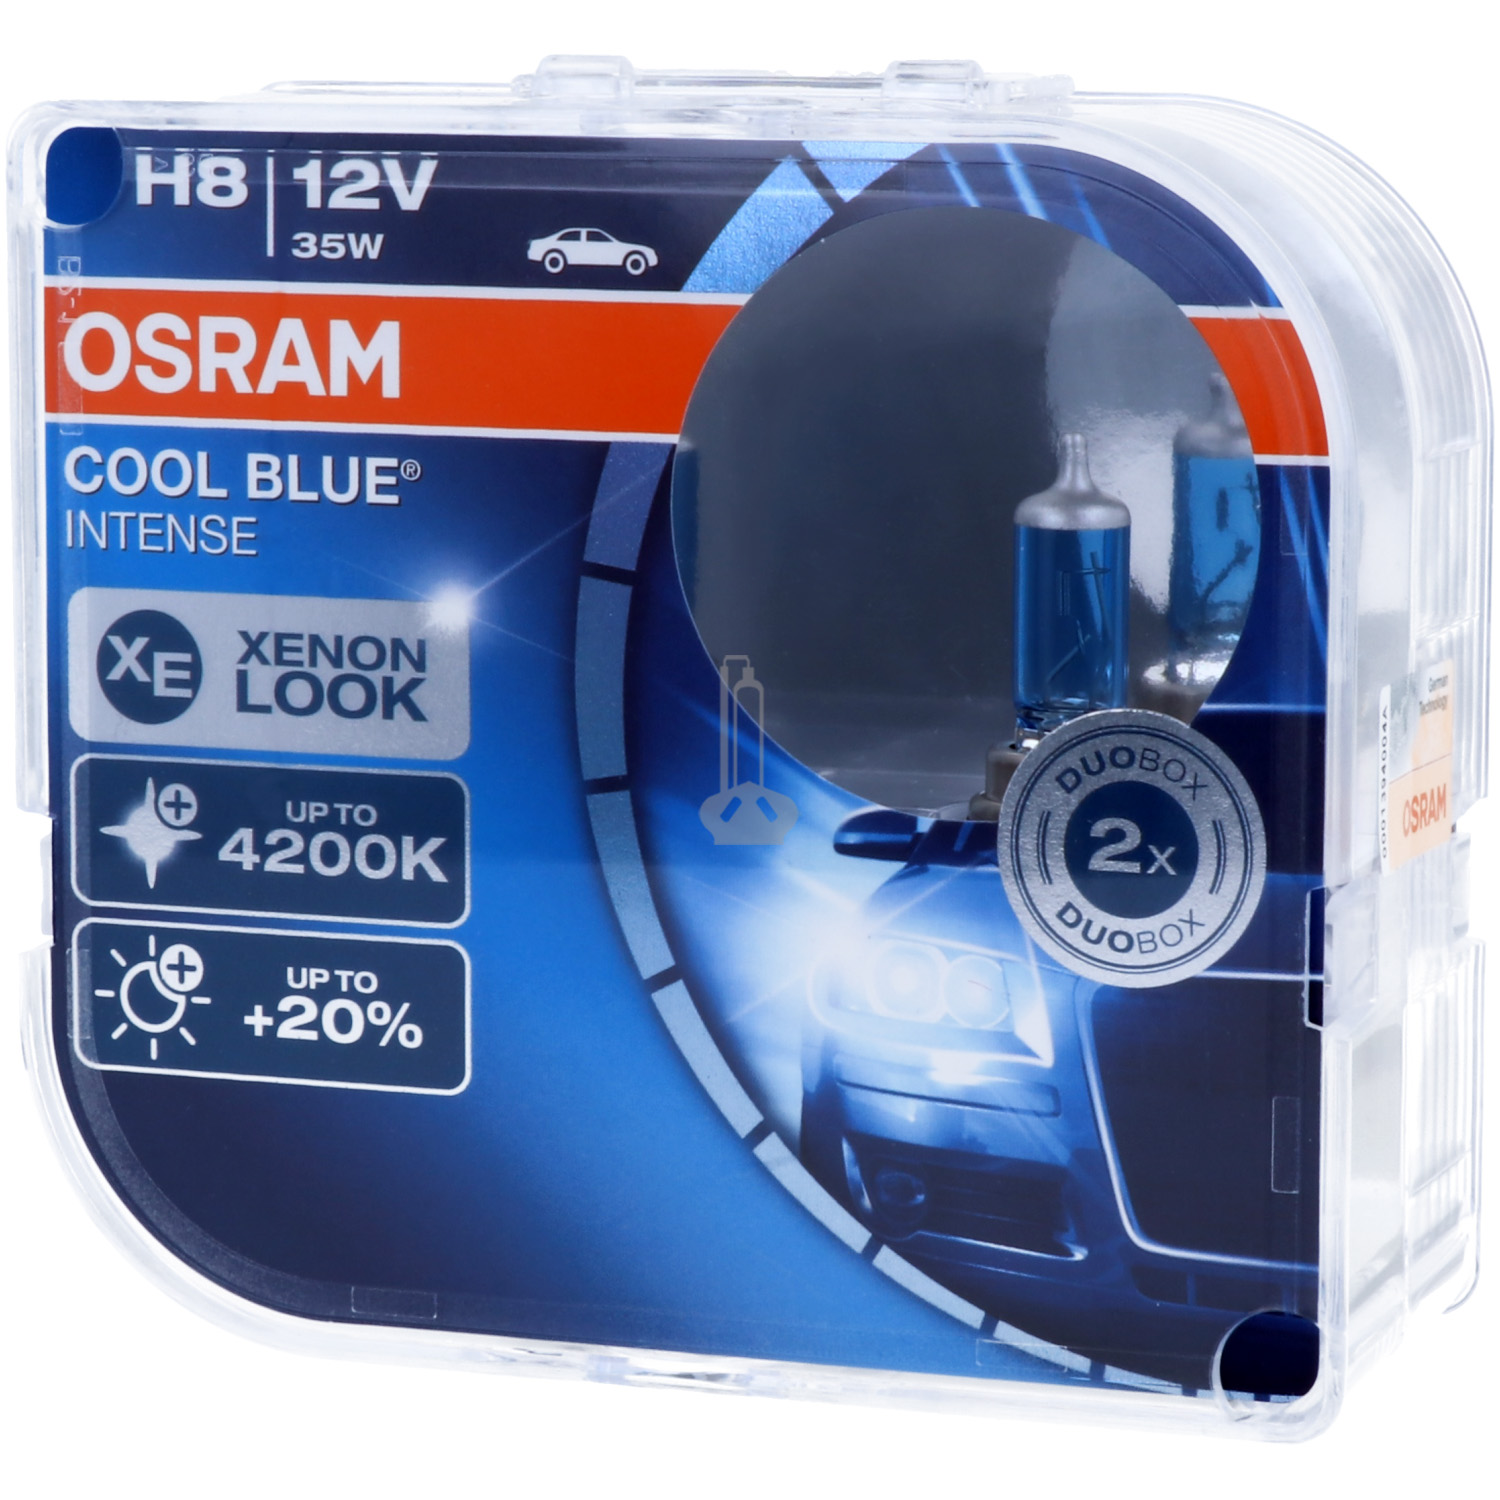 OSRAM Cool Blue Intense - Stylischer Look